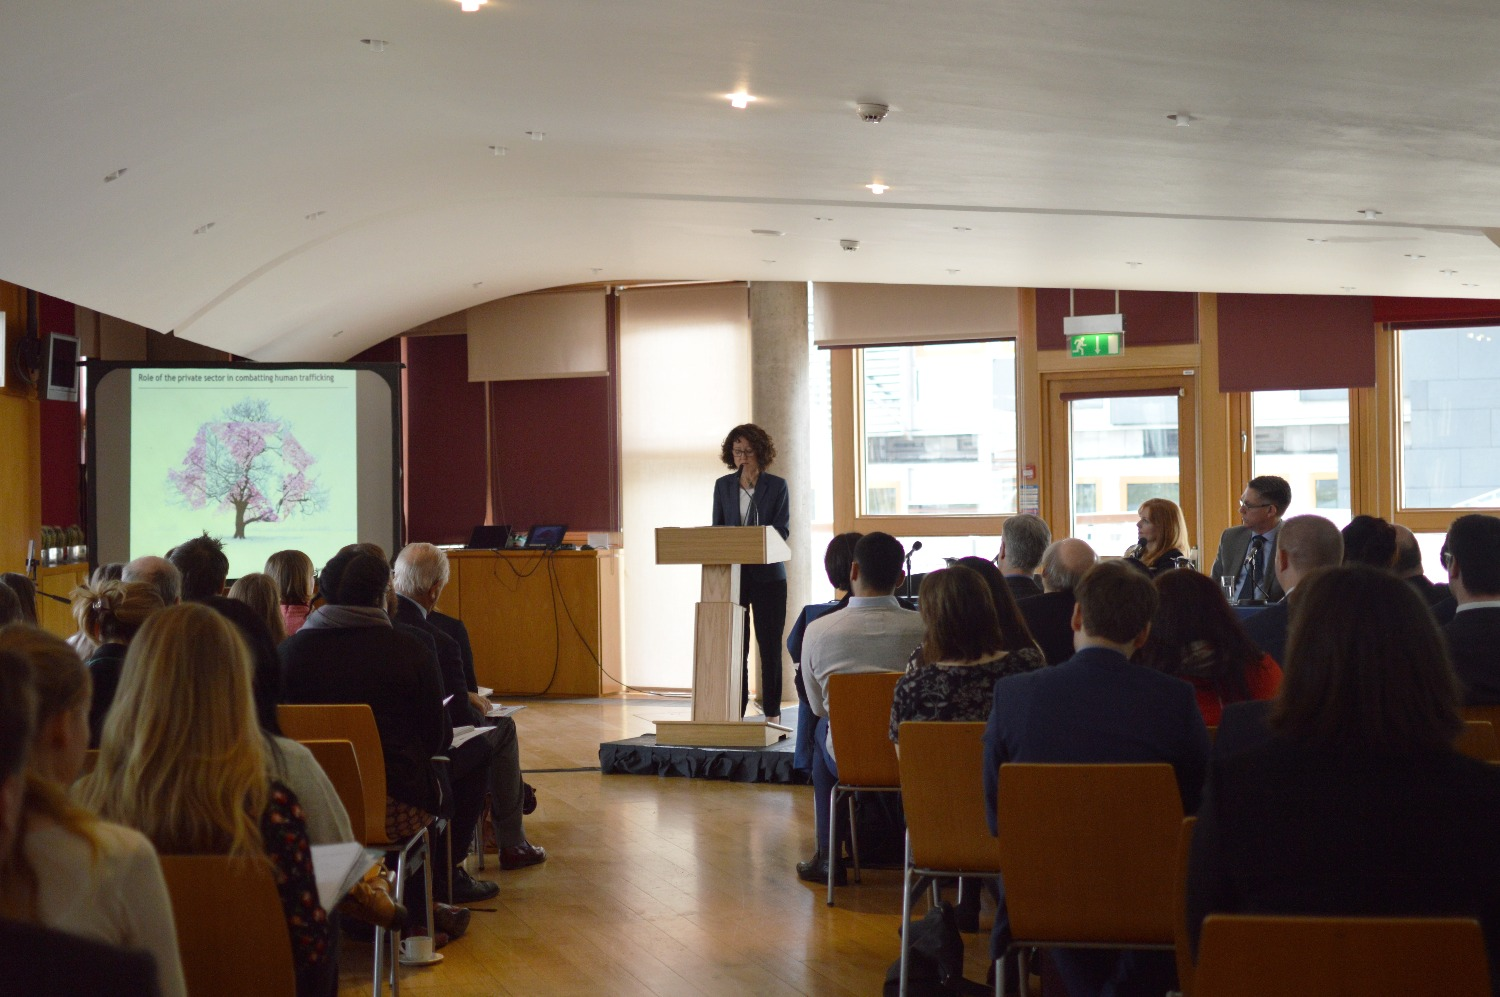 Alison McGregor, CEO of HSBC Scotland, presents on the financial sector's role in preventing and ending trafficking.